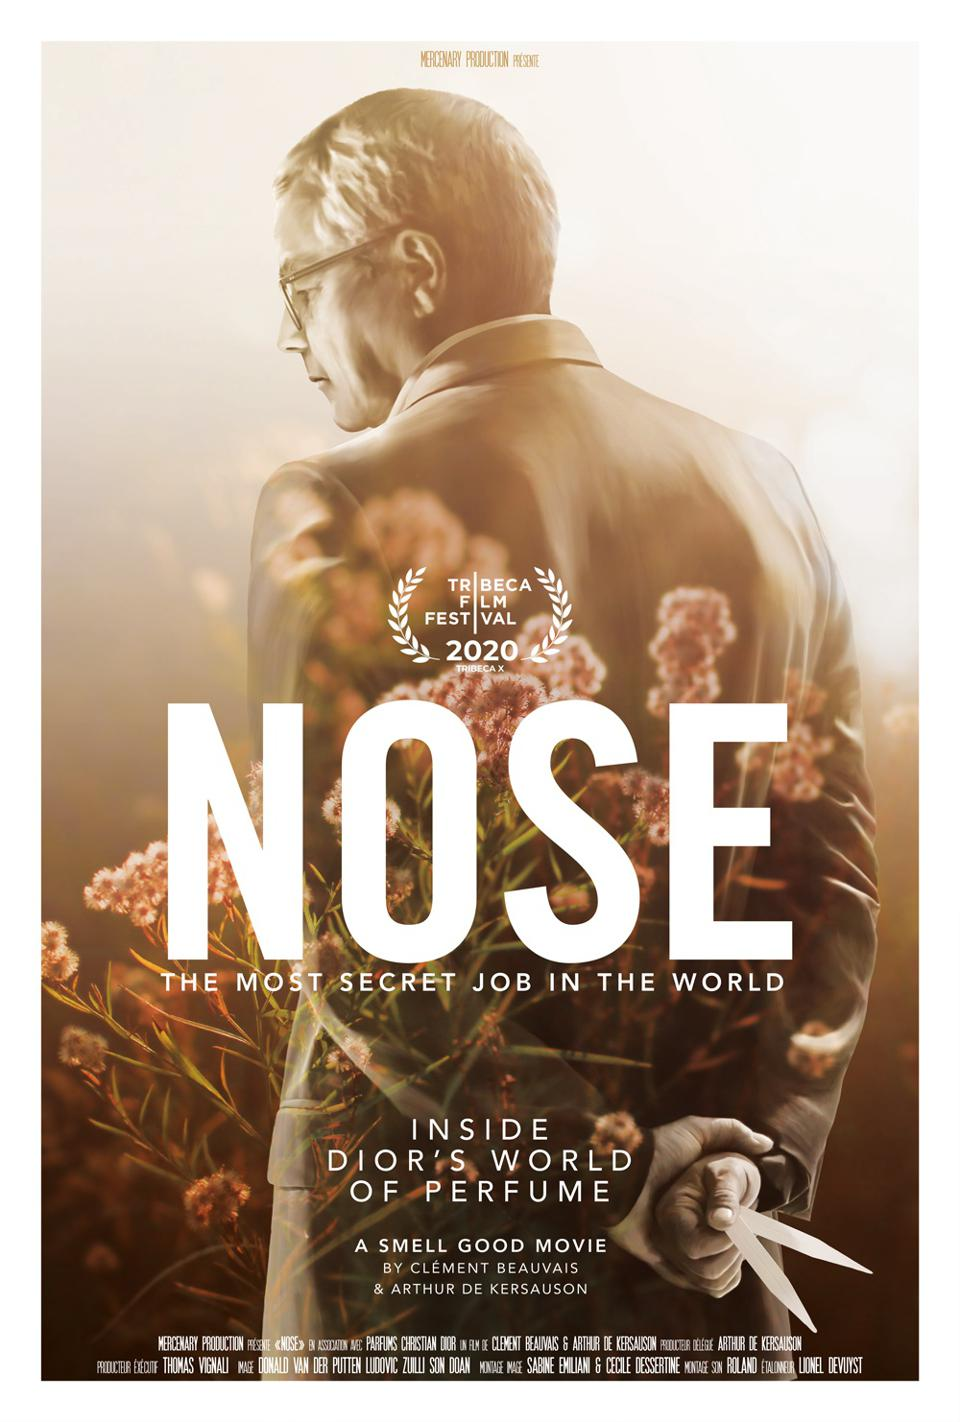 The 'Nose' film poster